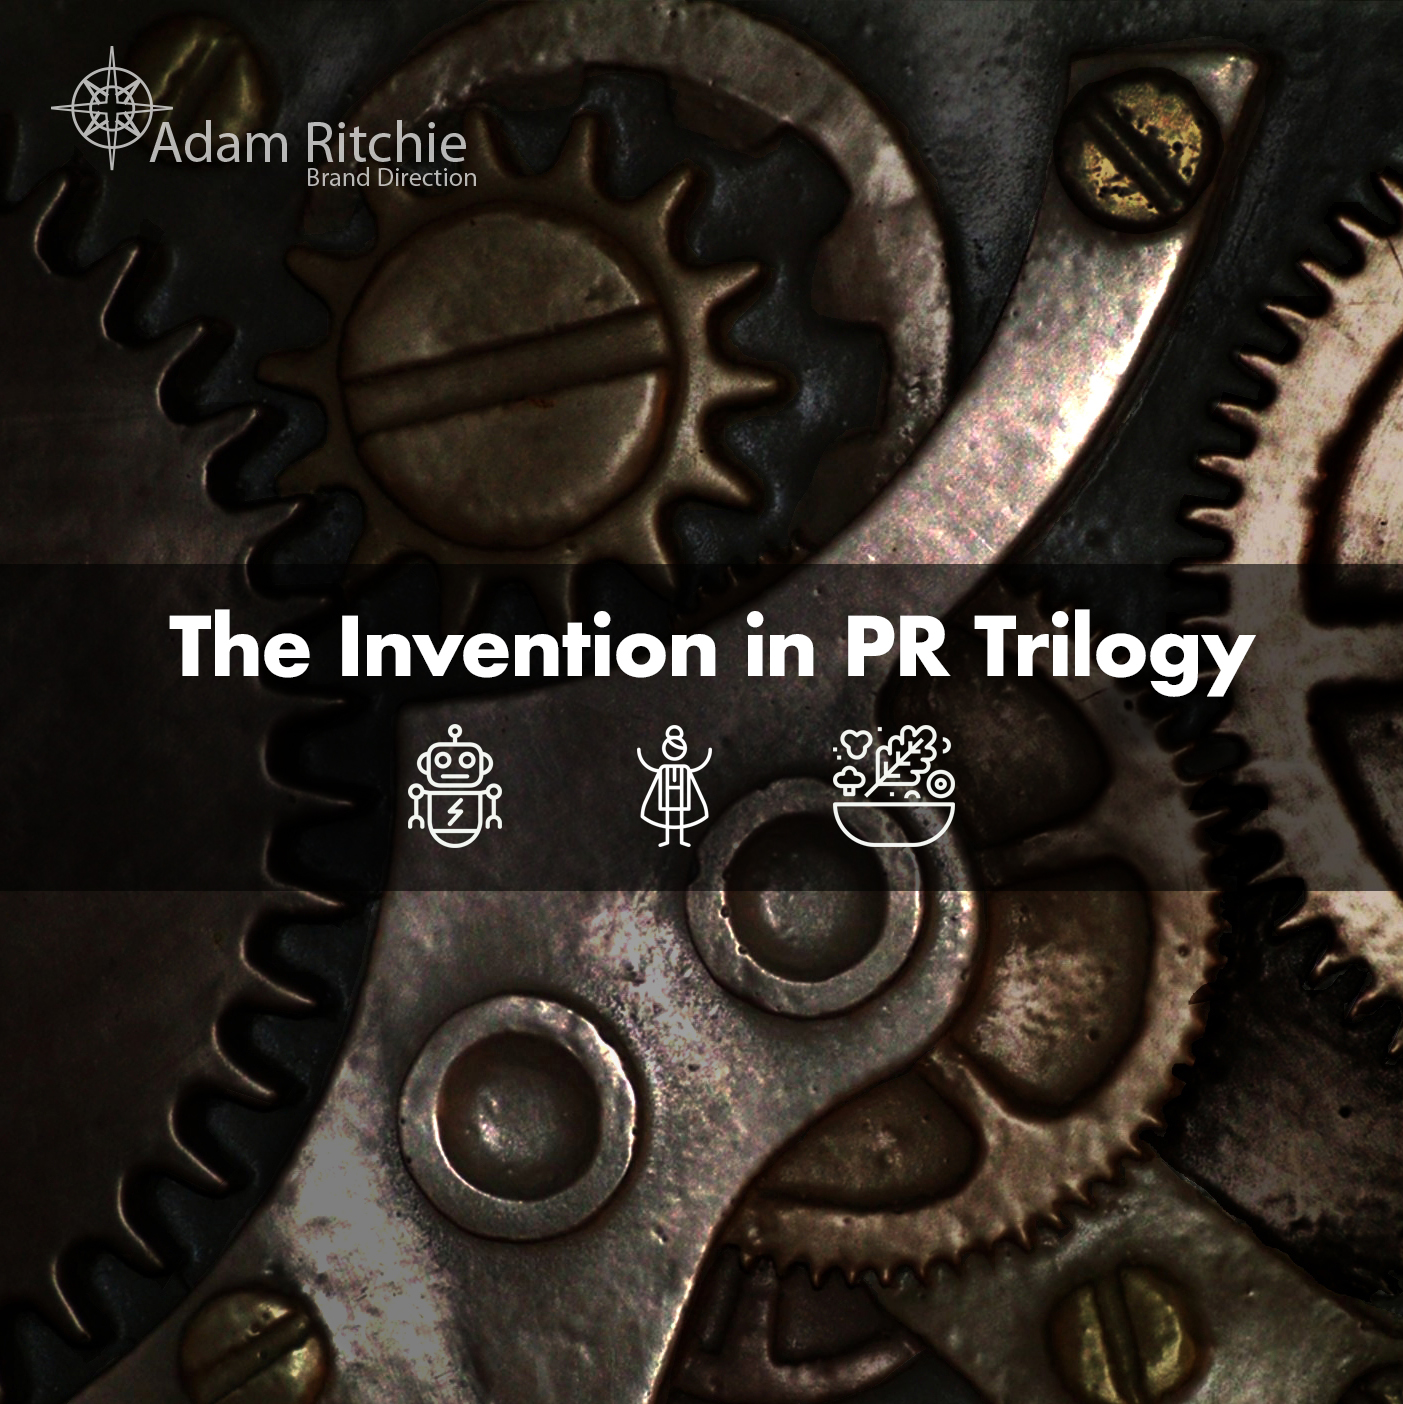 The Invention in PR Trilogy by Adam Ritchie Brand Direction